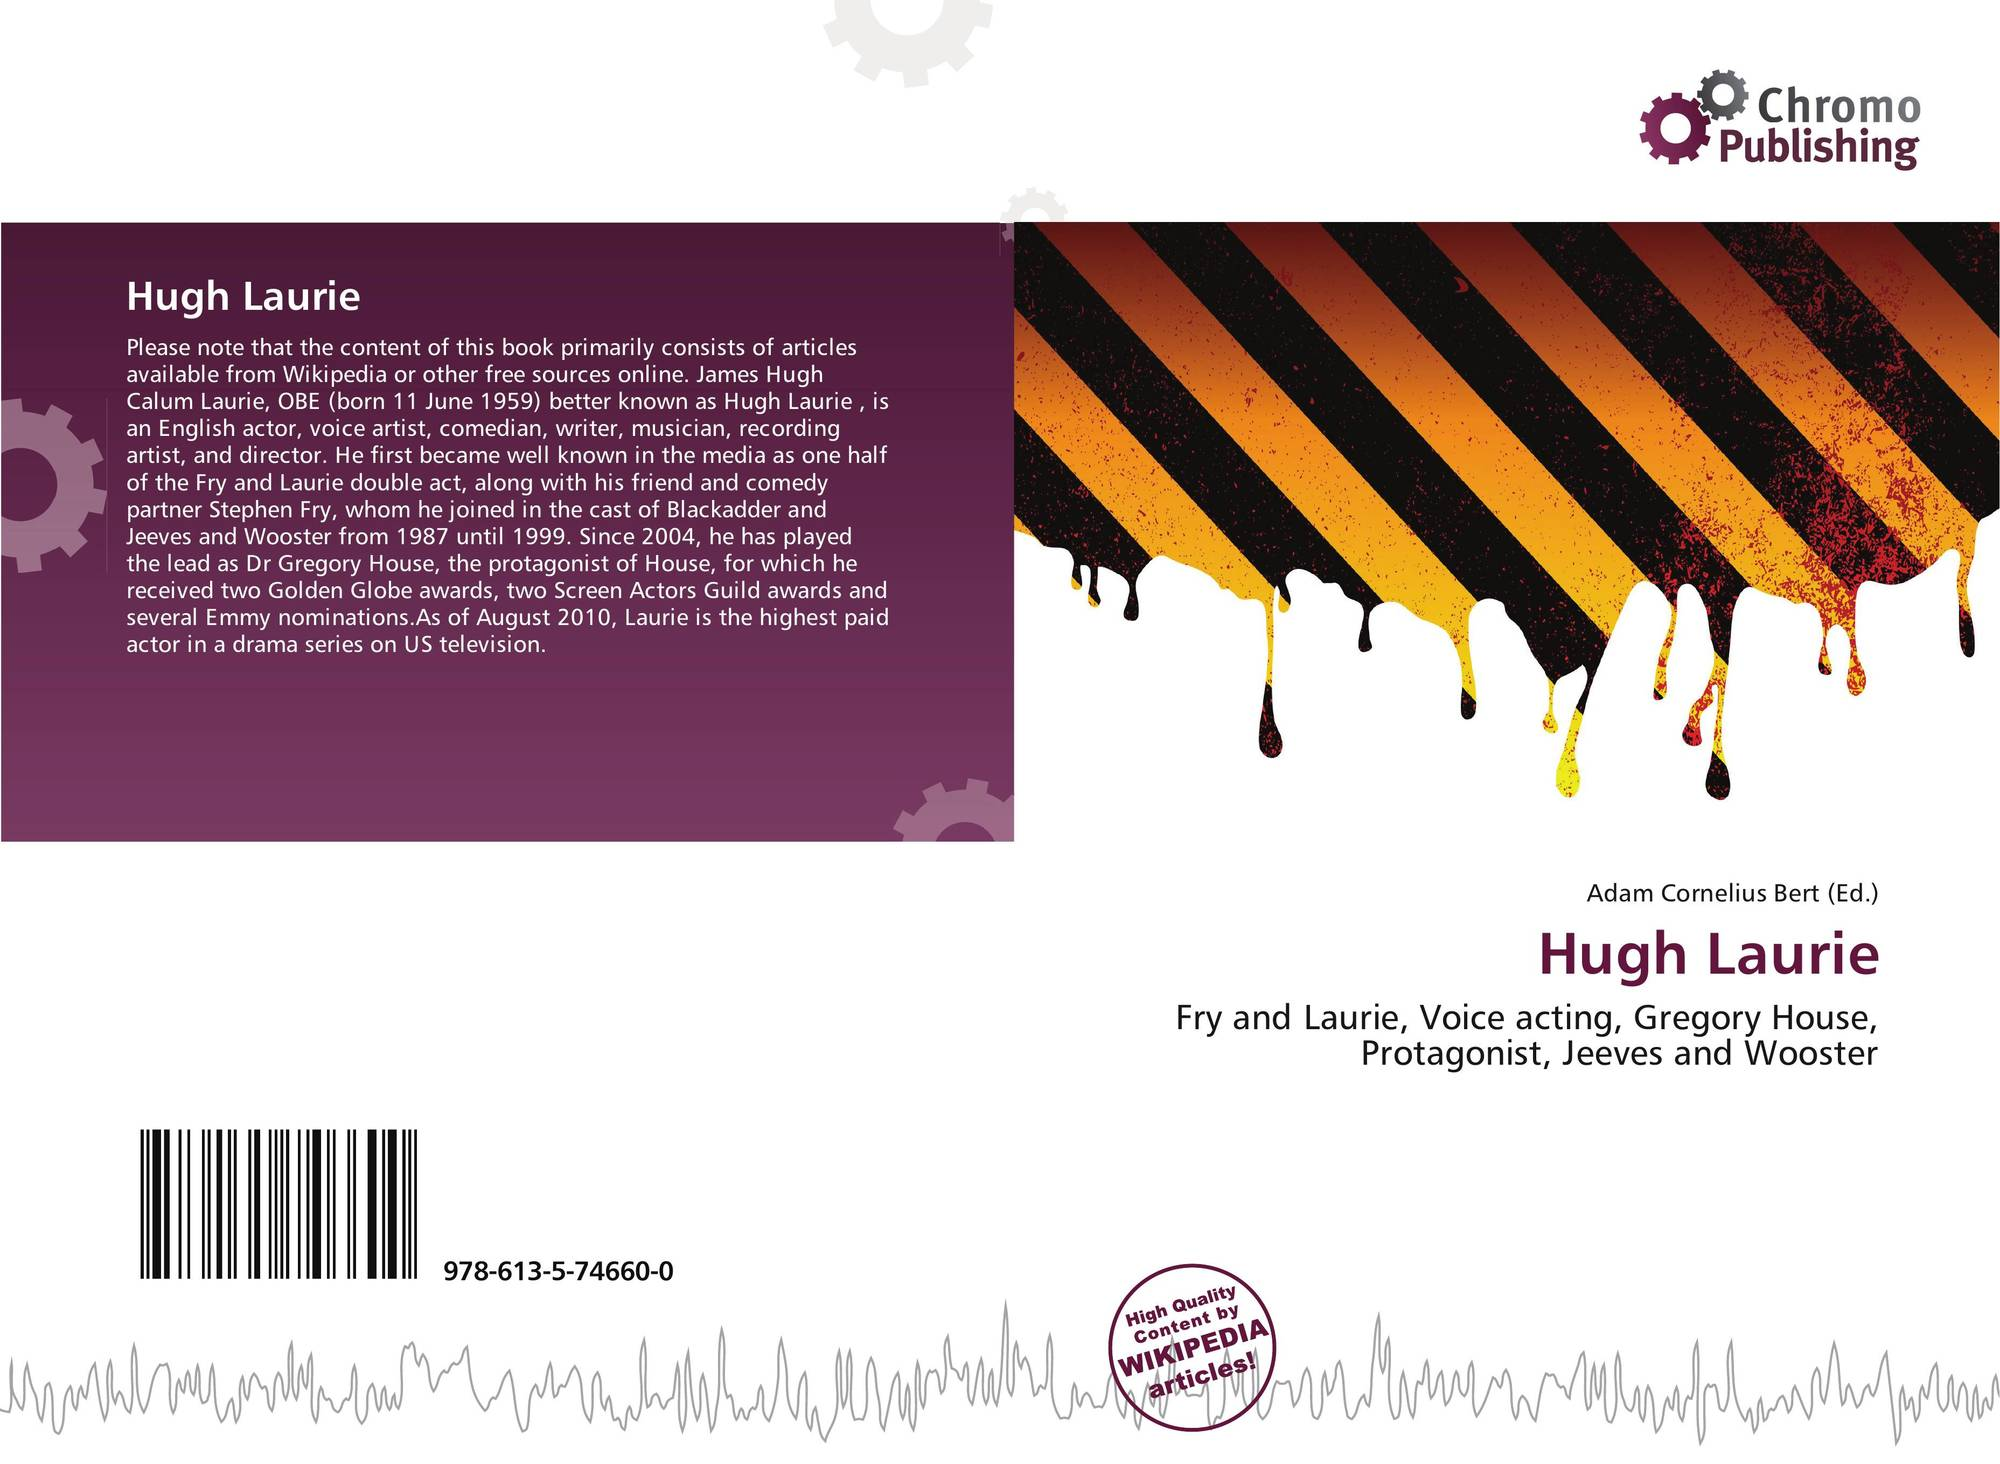 hugh laurie band image search results auto design tech